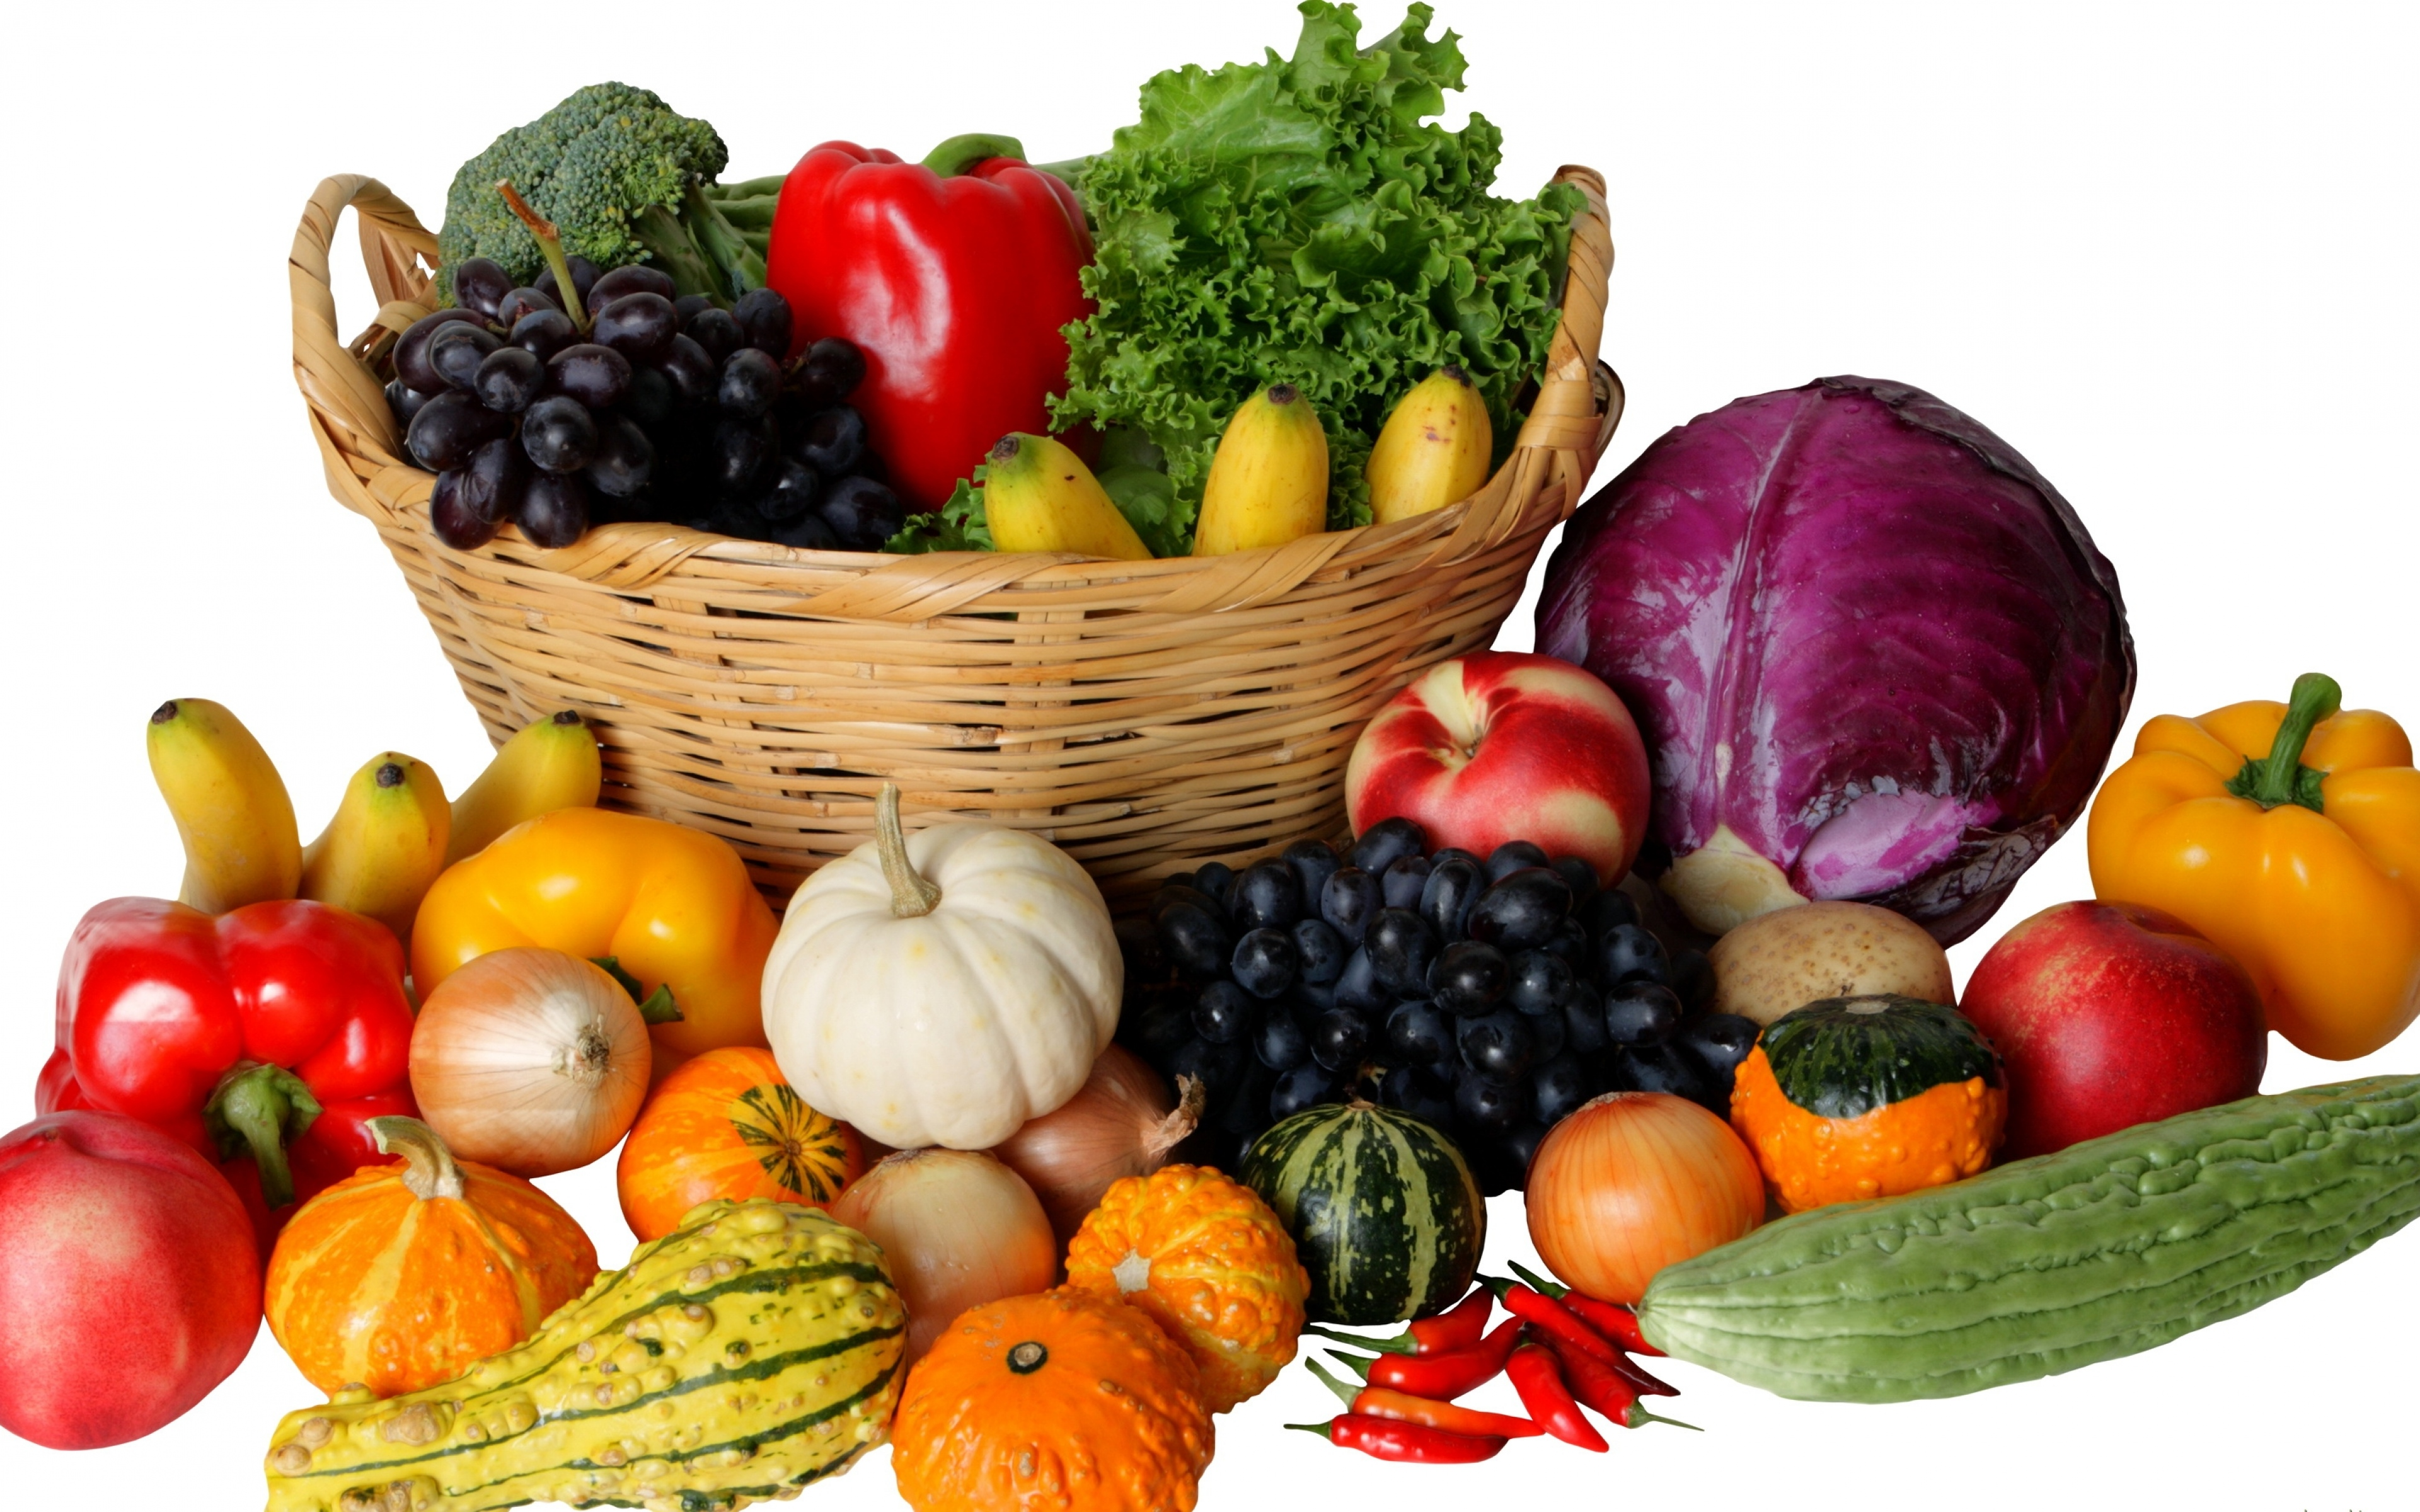 4K Basket With Vegetables Wallpapers High Quality